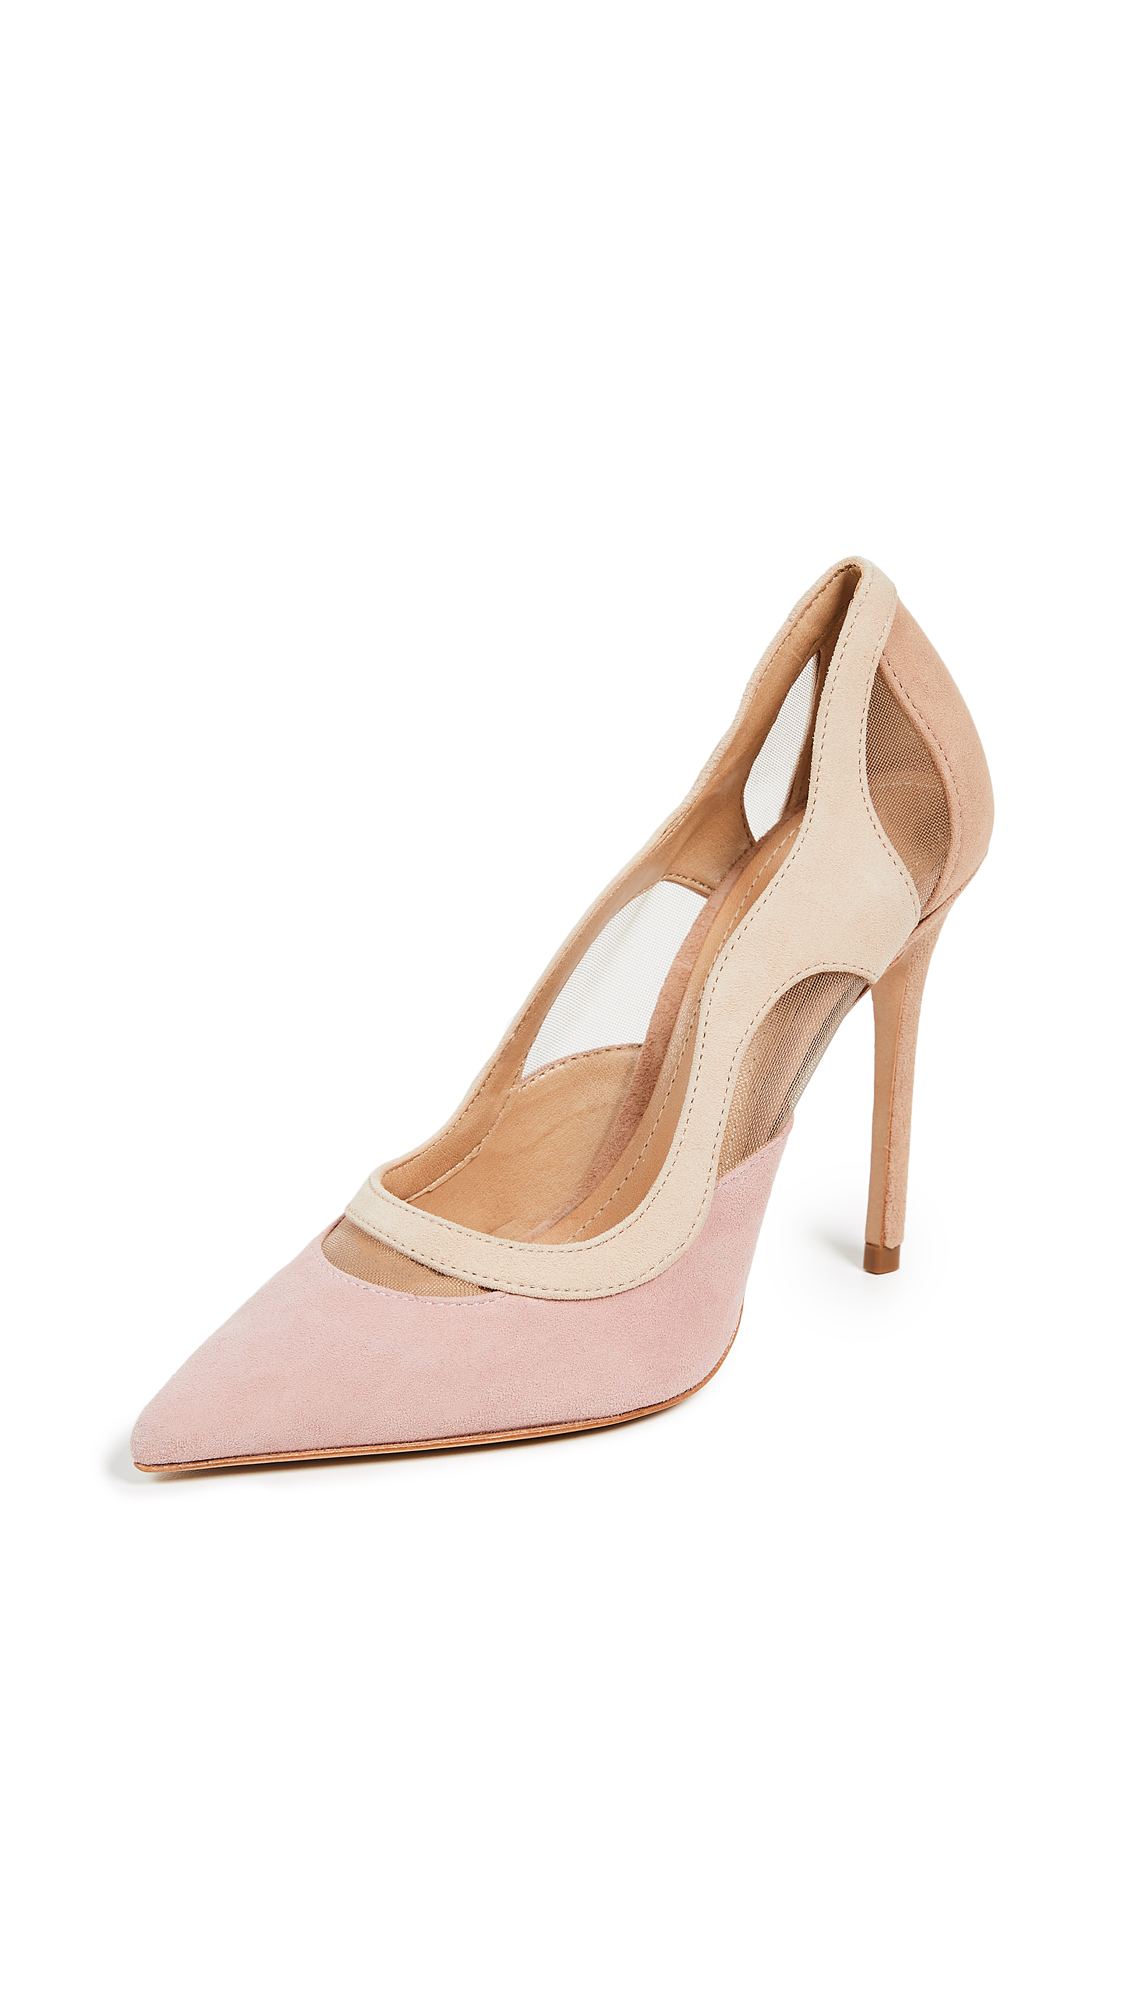 Poliany Point Toe Pumps in Pop from SCHUTZ-SHOES